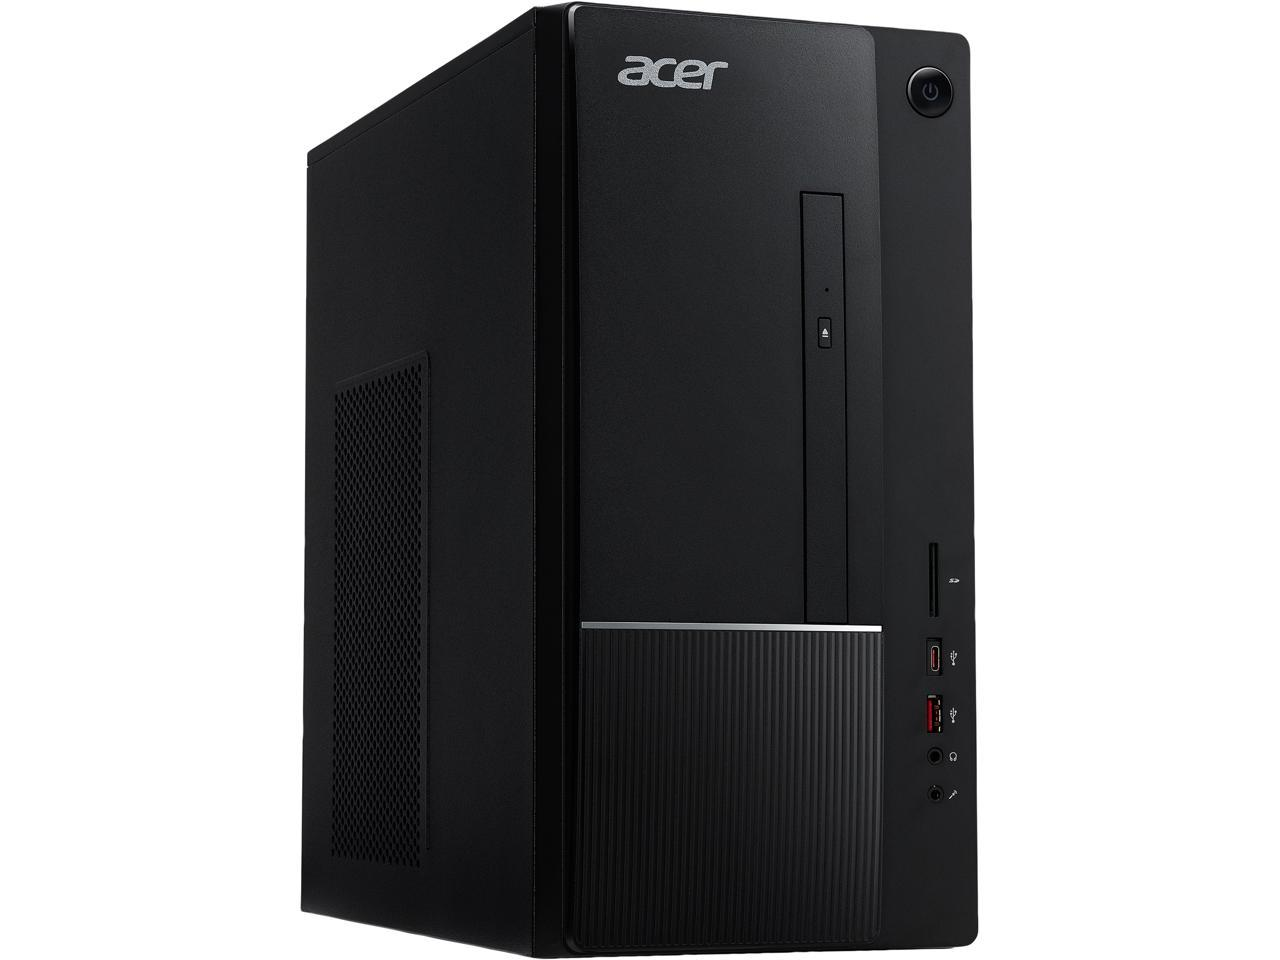 Acer Aspire T TC-865 Desktop (Quad Core i3-8100 / 8GB / 1TB)